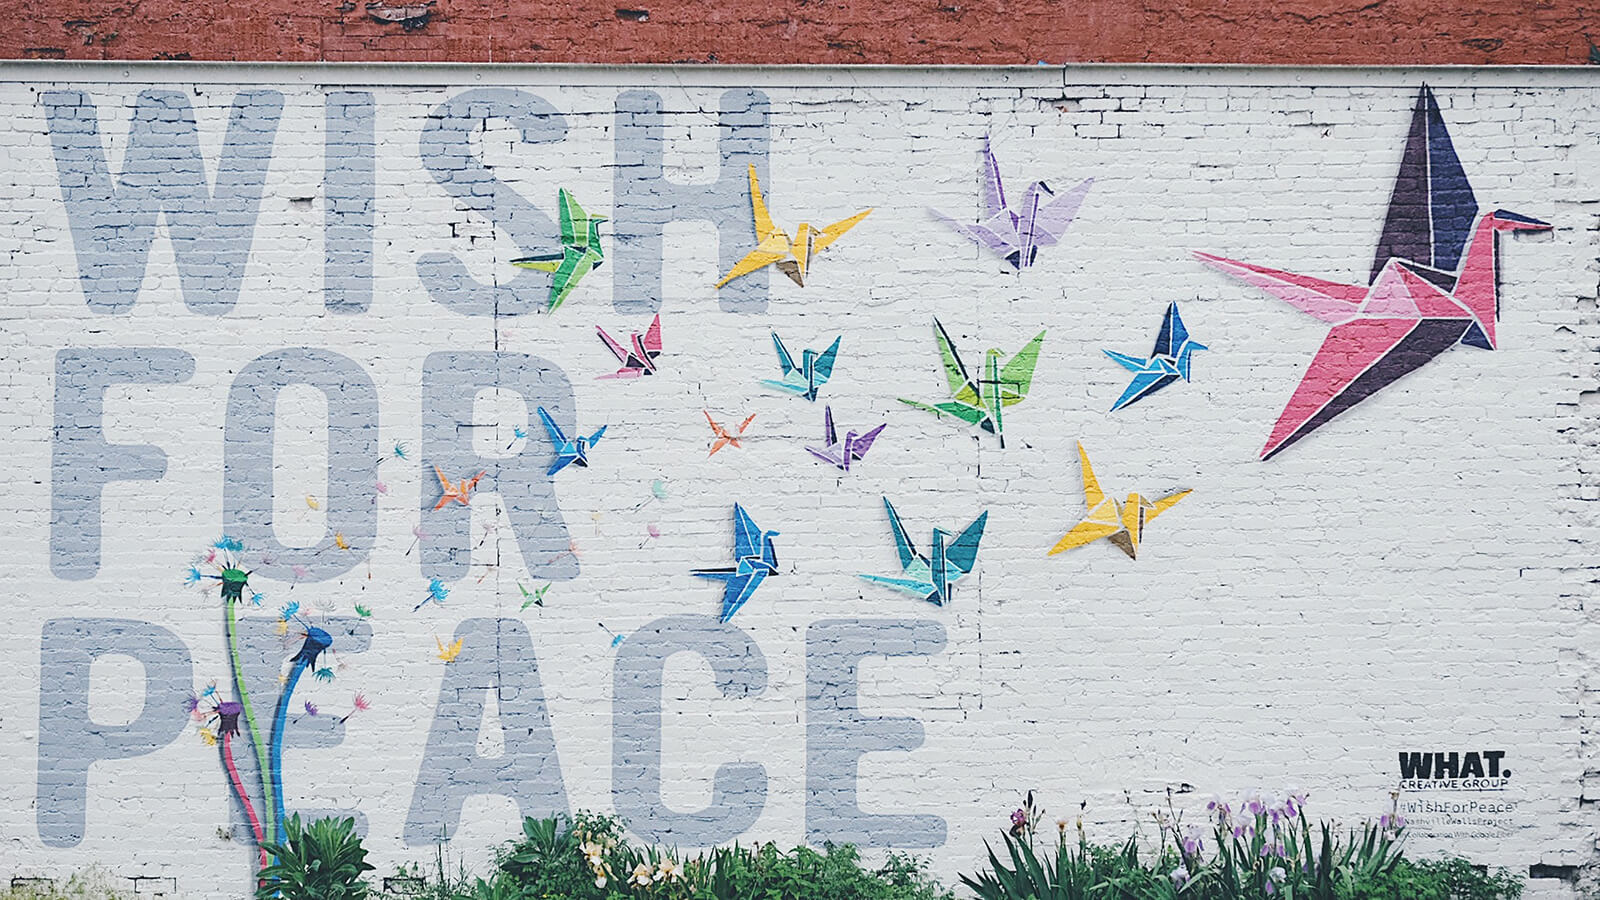 Keep an eye out for offbeat Nashville street art as you explore the city